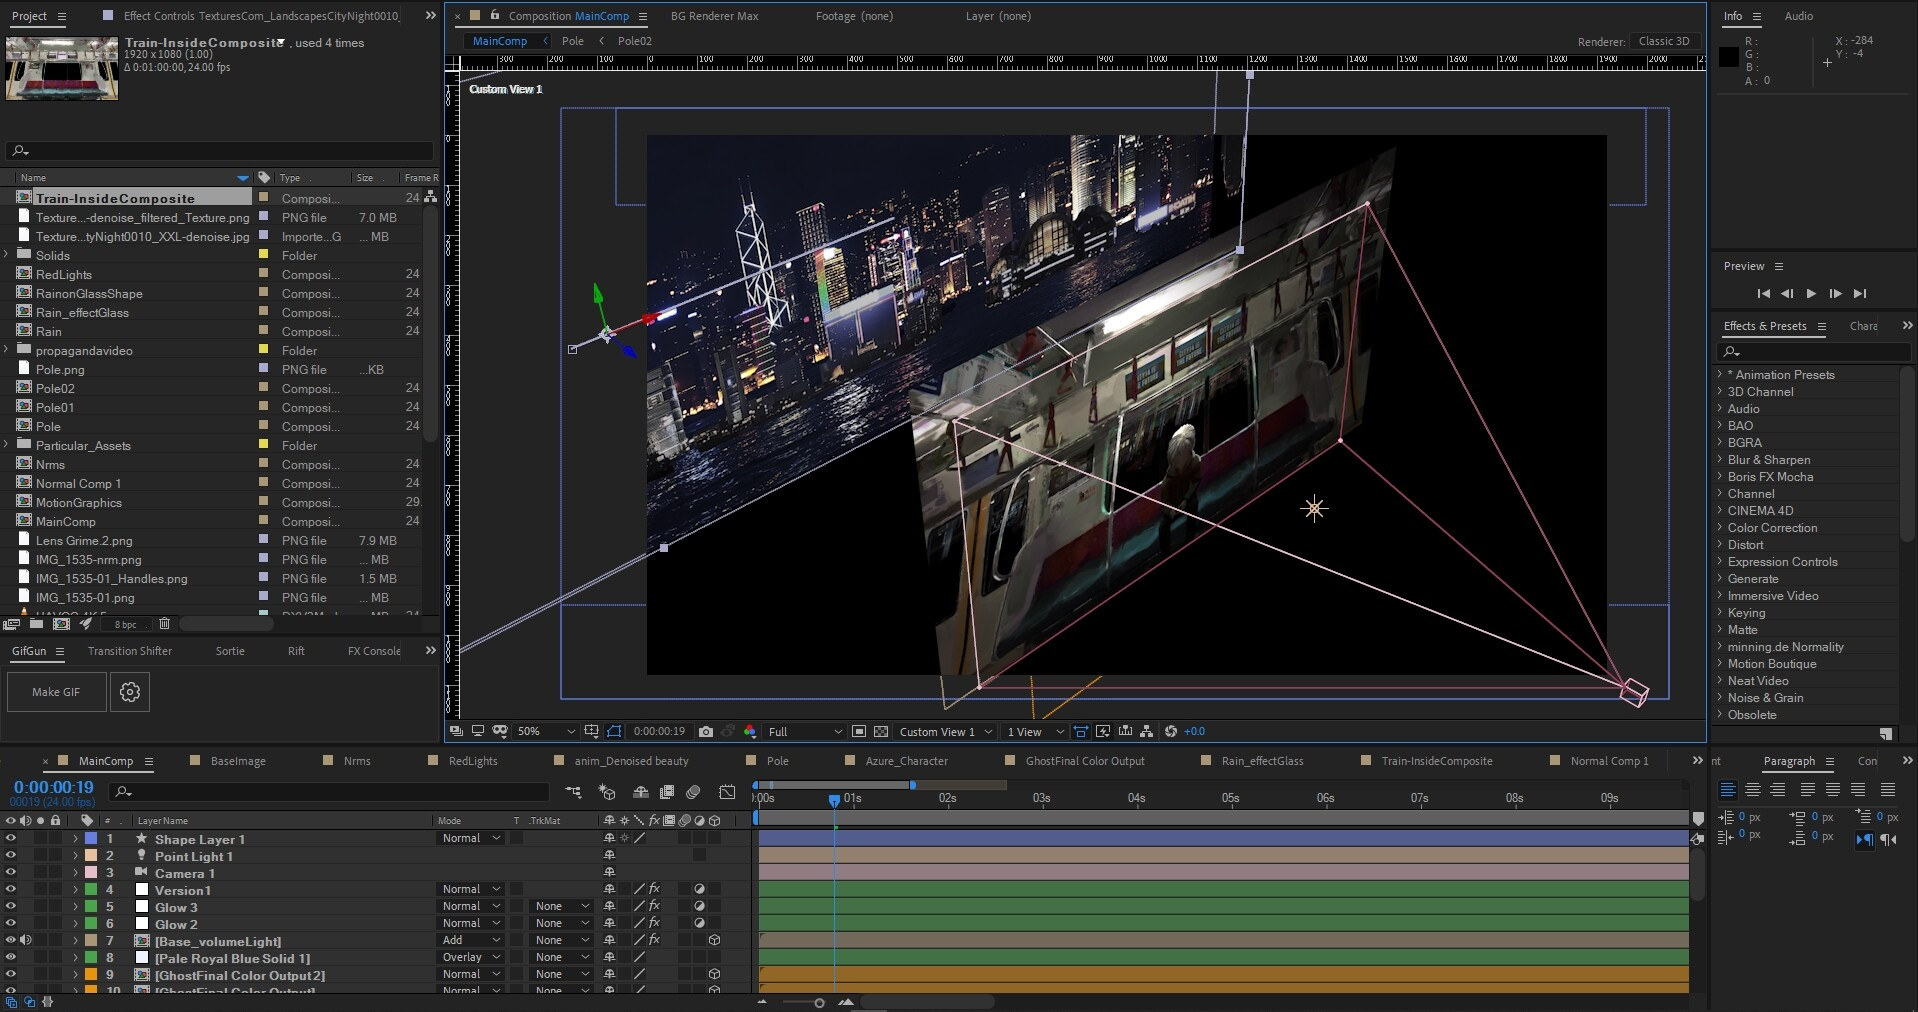 AfterEffects scene. This was never intended to be a professional job... just for fun... hence the mess!